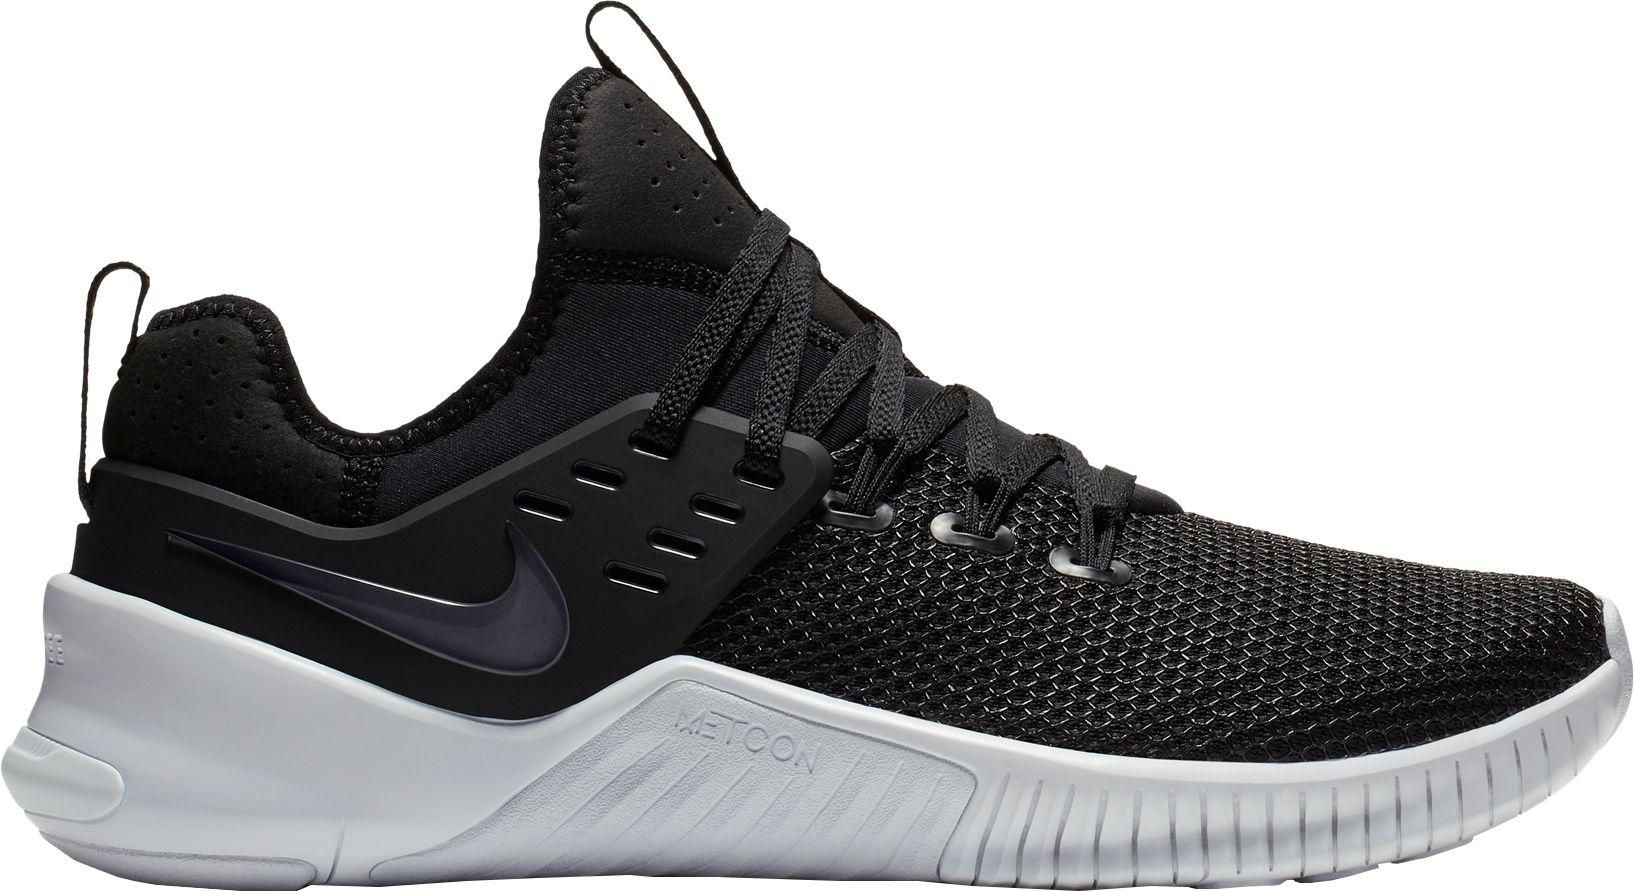 6eef83357fc Lyst - Nike Free X Metcon Training Shoes in Black for Men